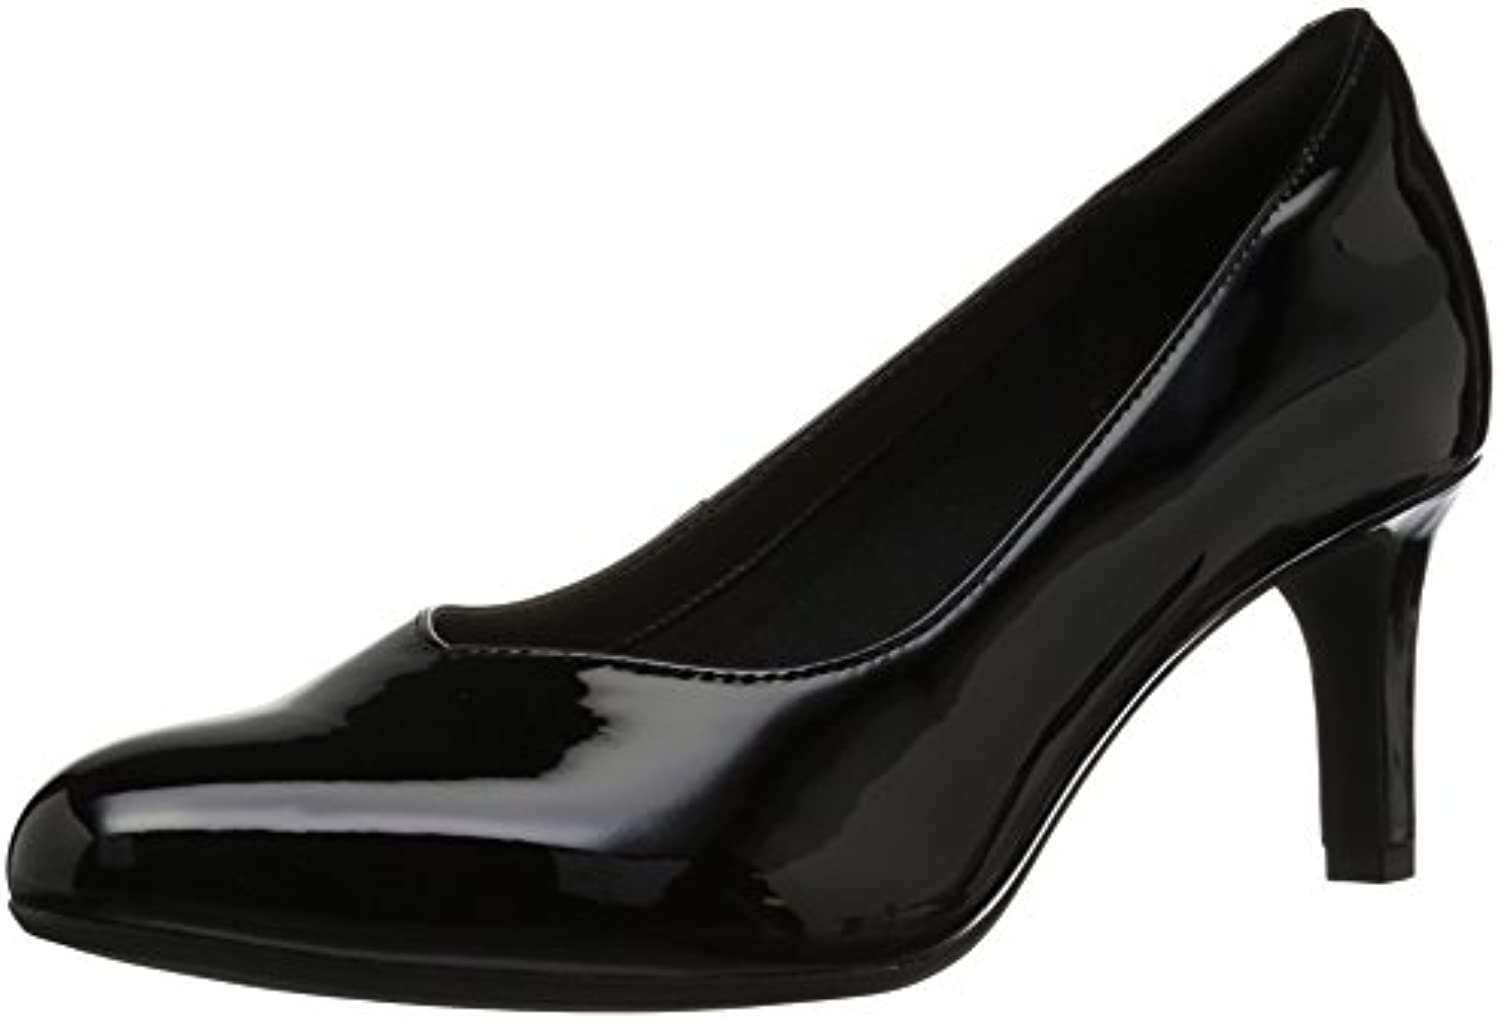 Clarks Wouomo Dancer Dancer Dancer Nolin Pump, nero Synthetic Patent, 090 M US | economia